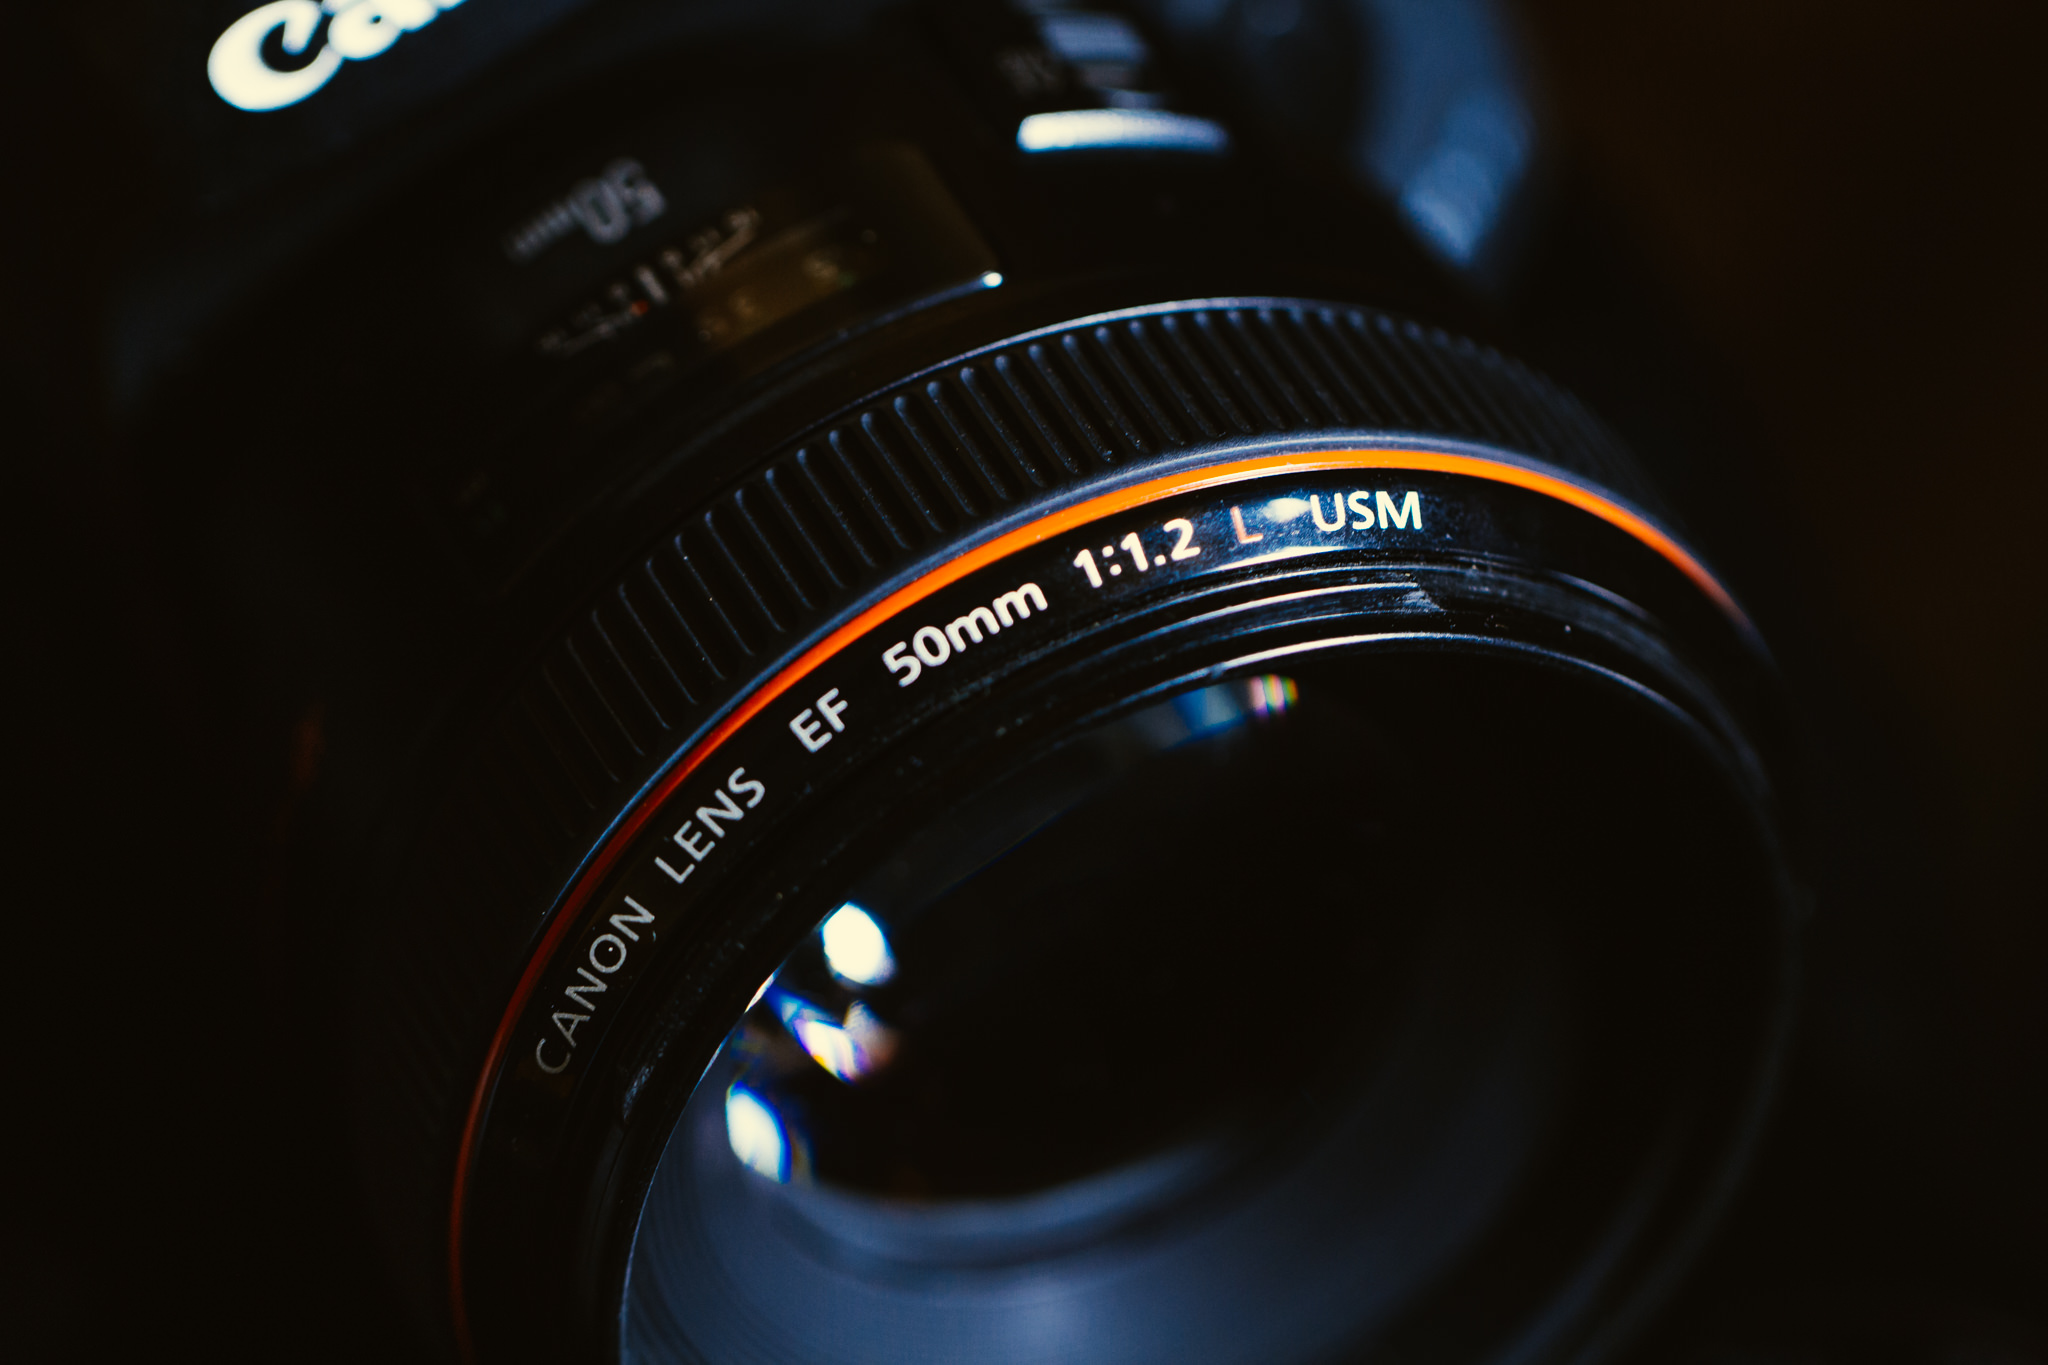 Canon's classic 50mm F1.2 lens, blurs backgrounds and let's the camera see in the dark